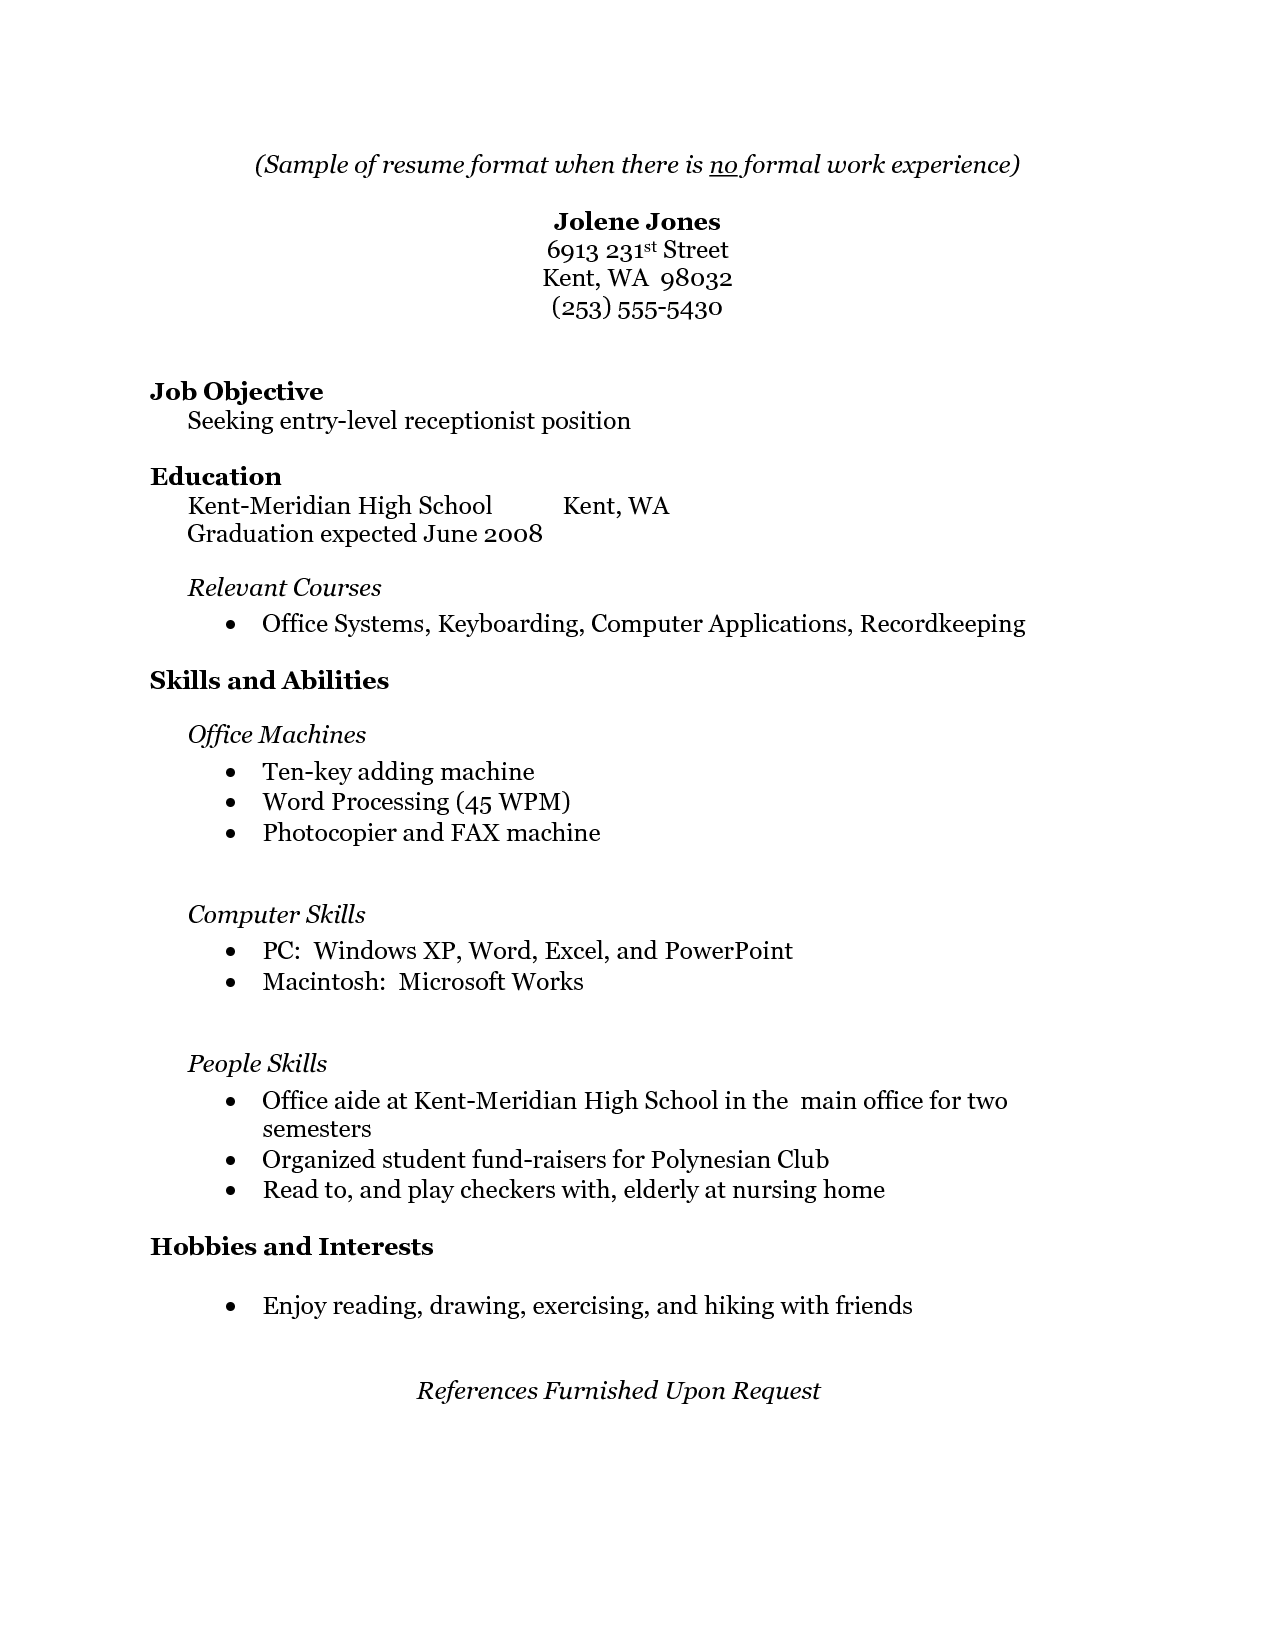 how to write a resume when you have no work experience steps template sample resume no